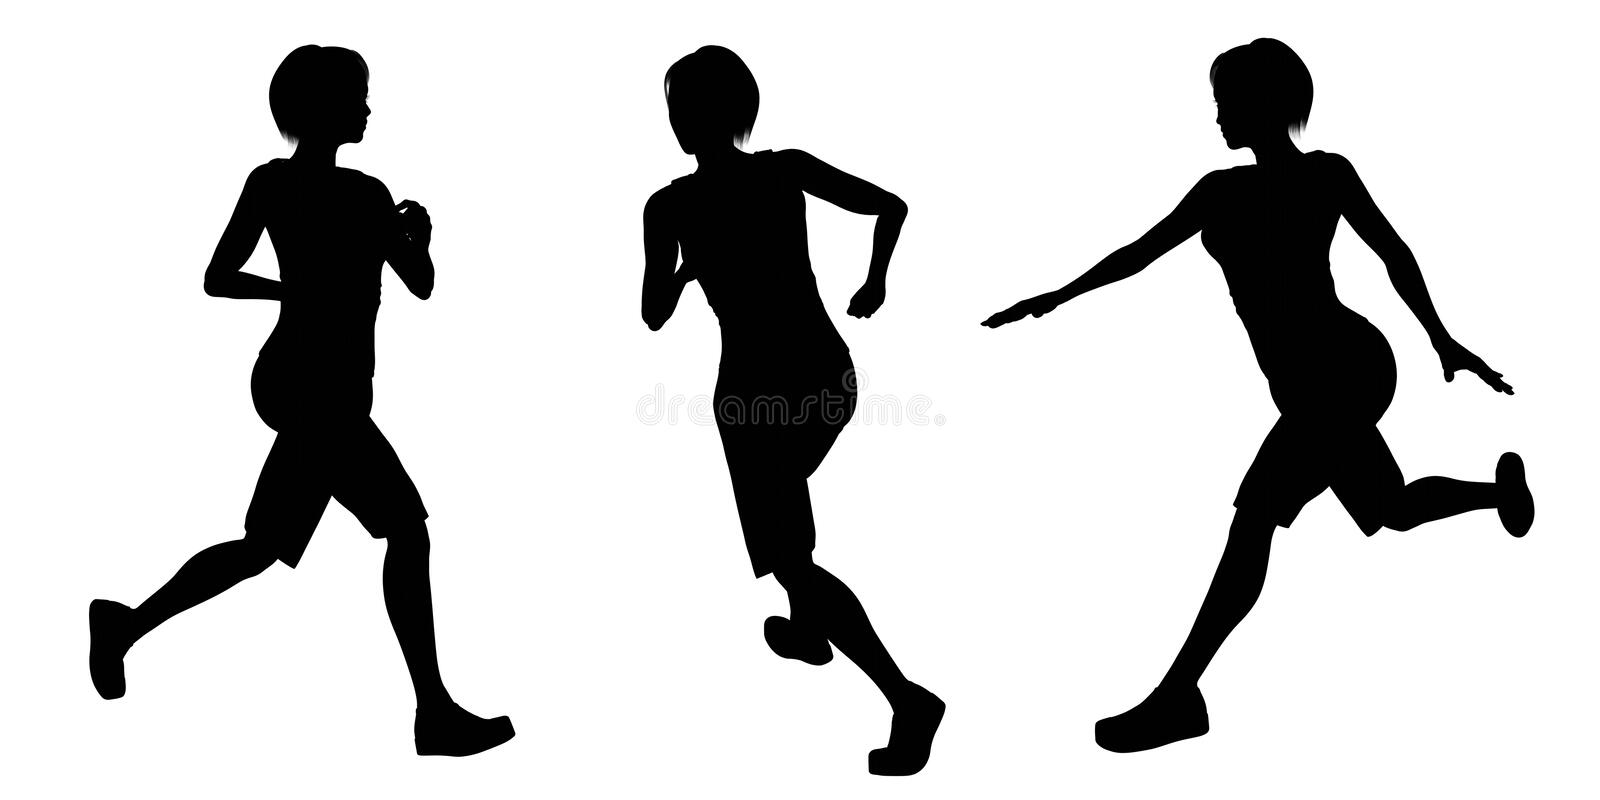 Download Female Runner Silhouettes - 1 Royalty Free Stock Photo - Image: 34352365